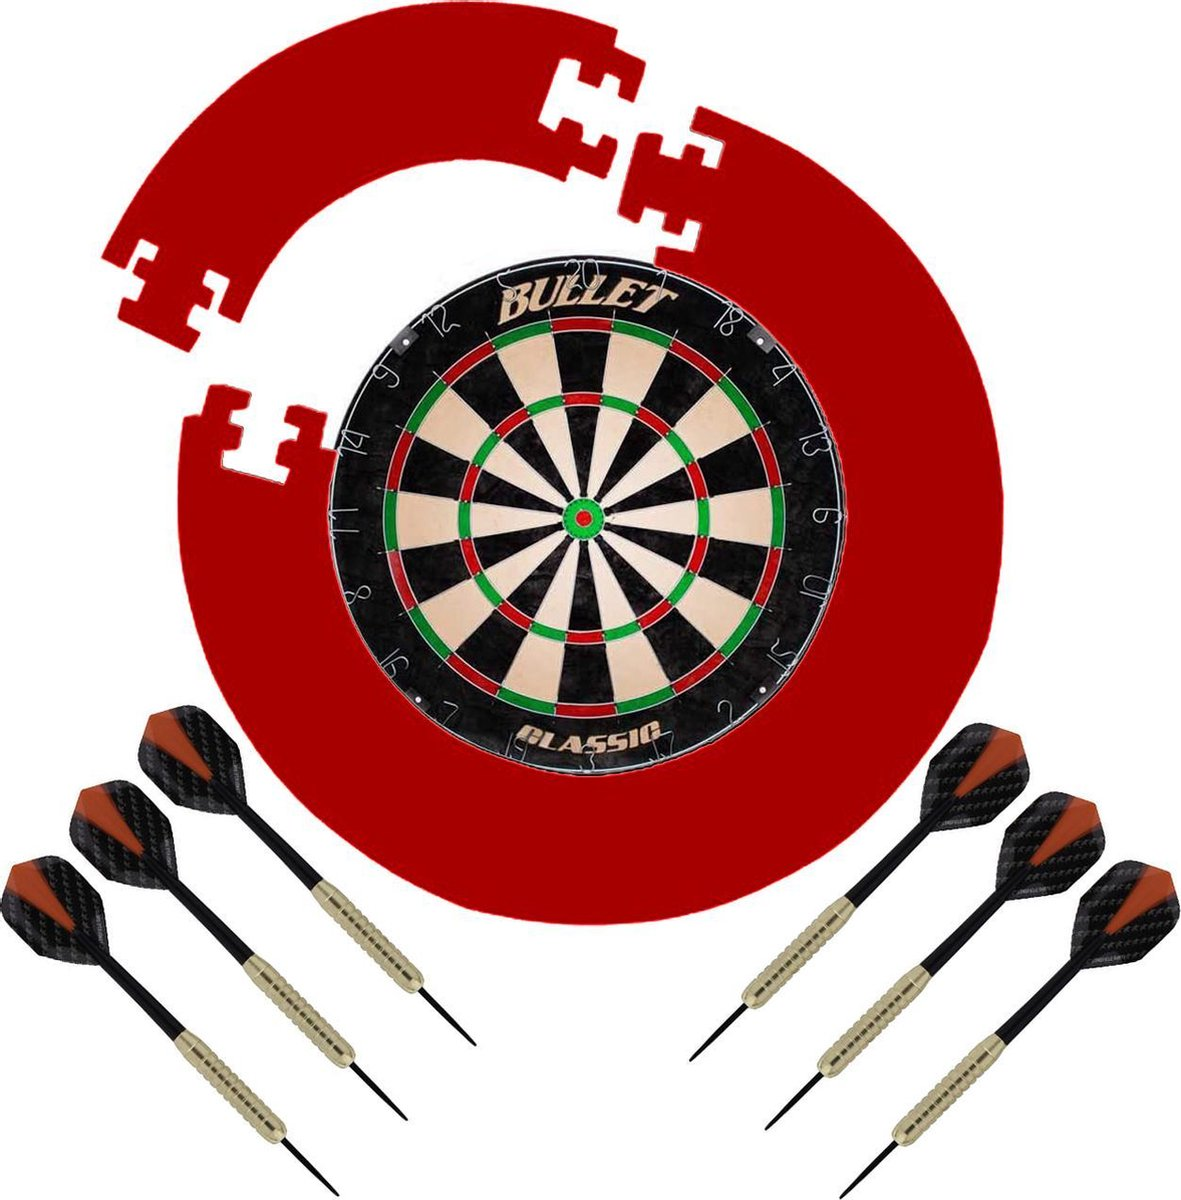 Dragon Darts Bullet Classic - dartbord - dartset compleet surround ring - rood